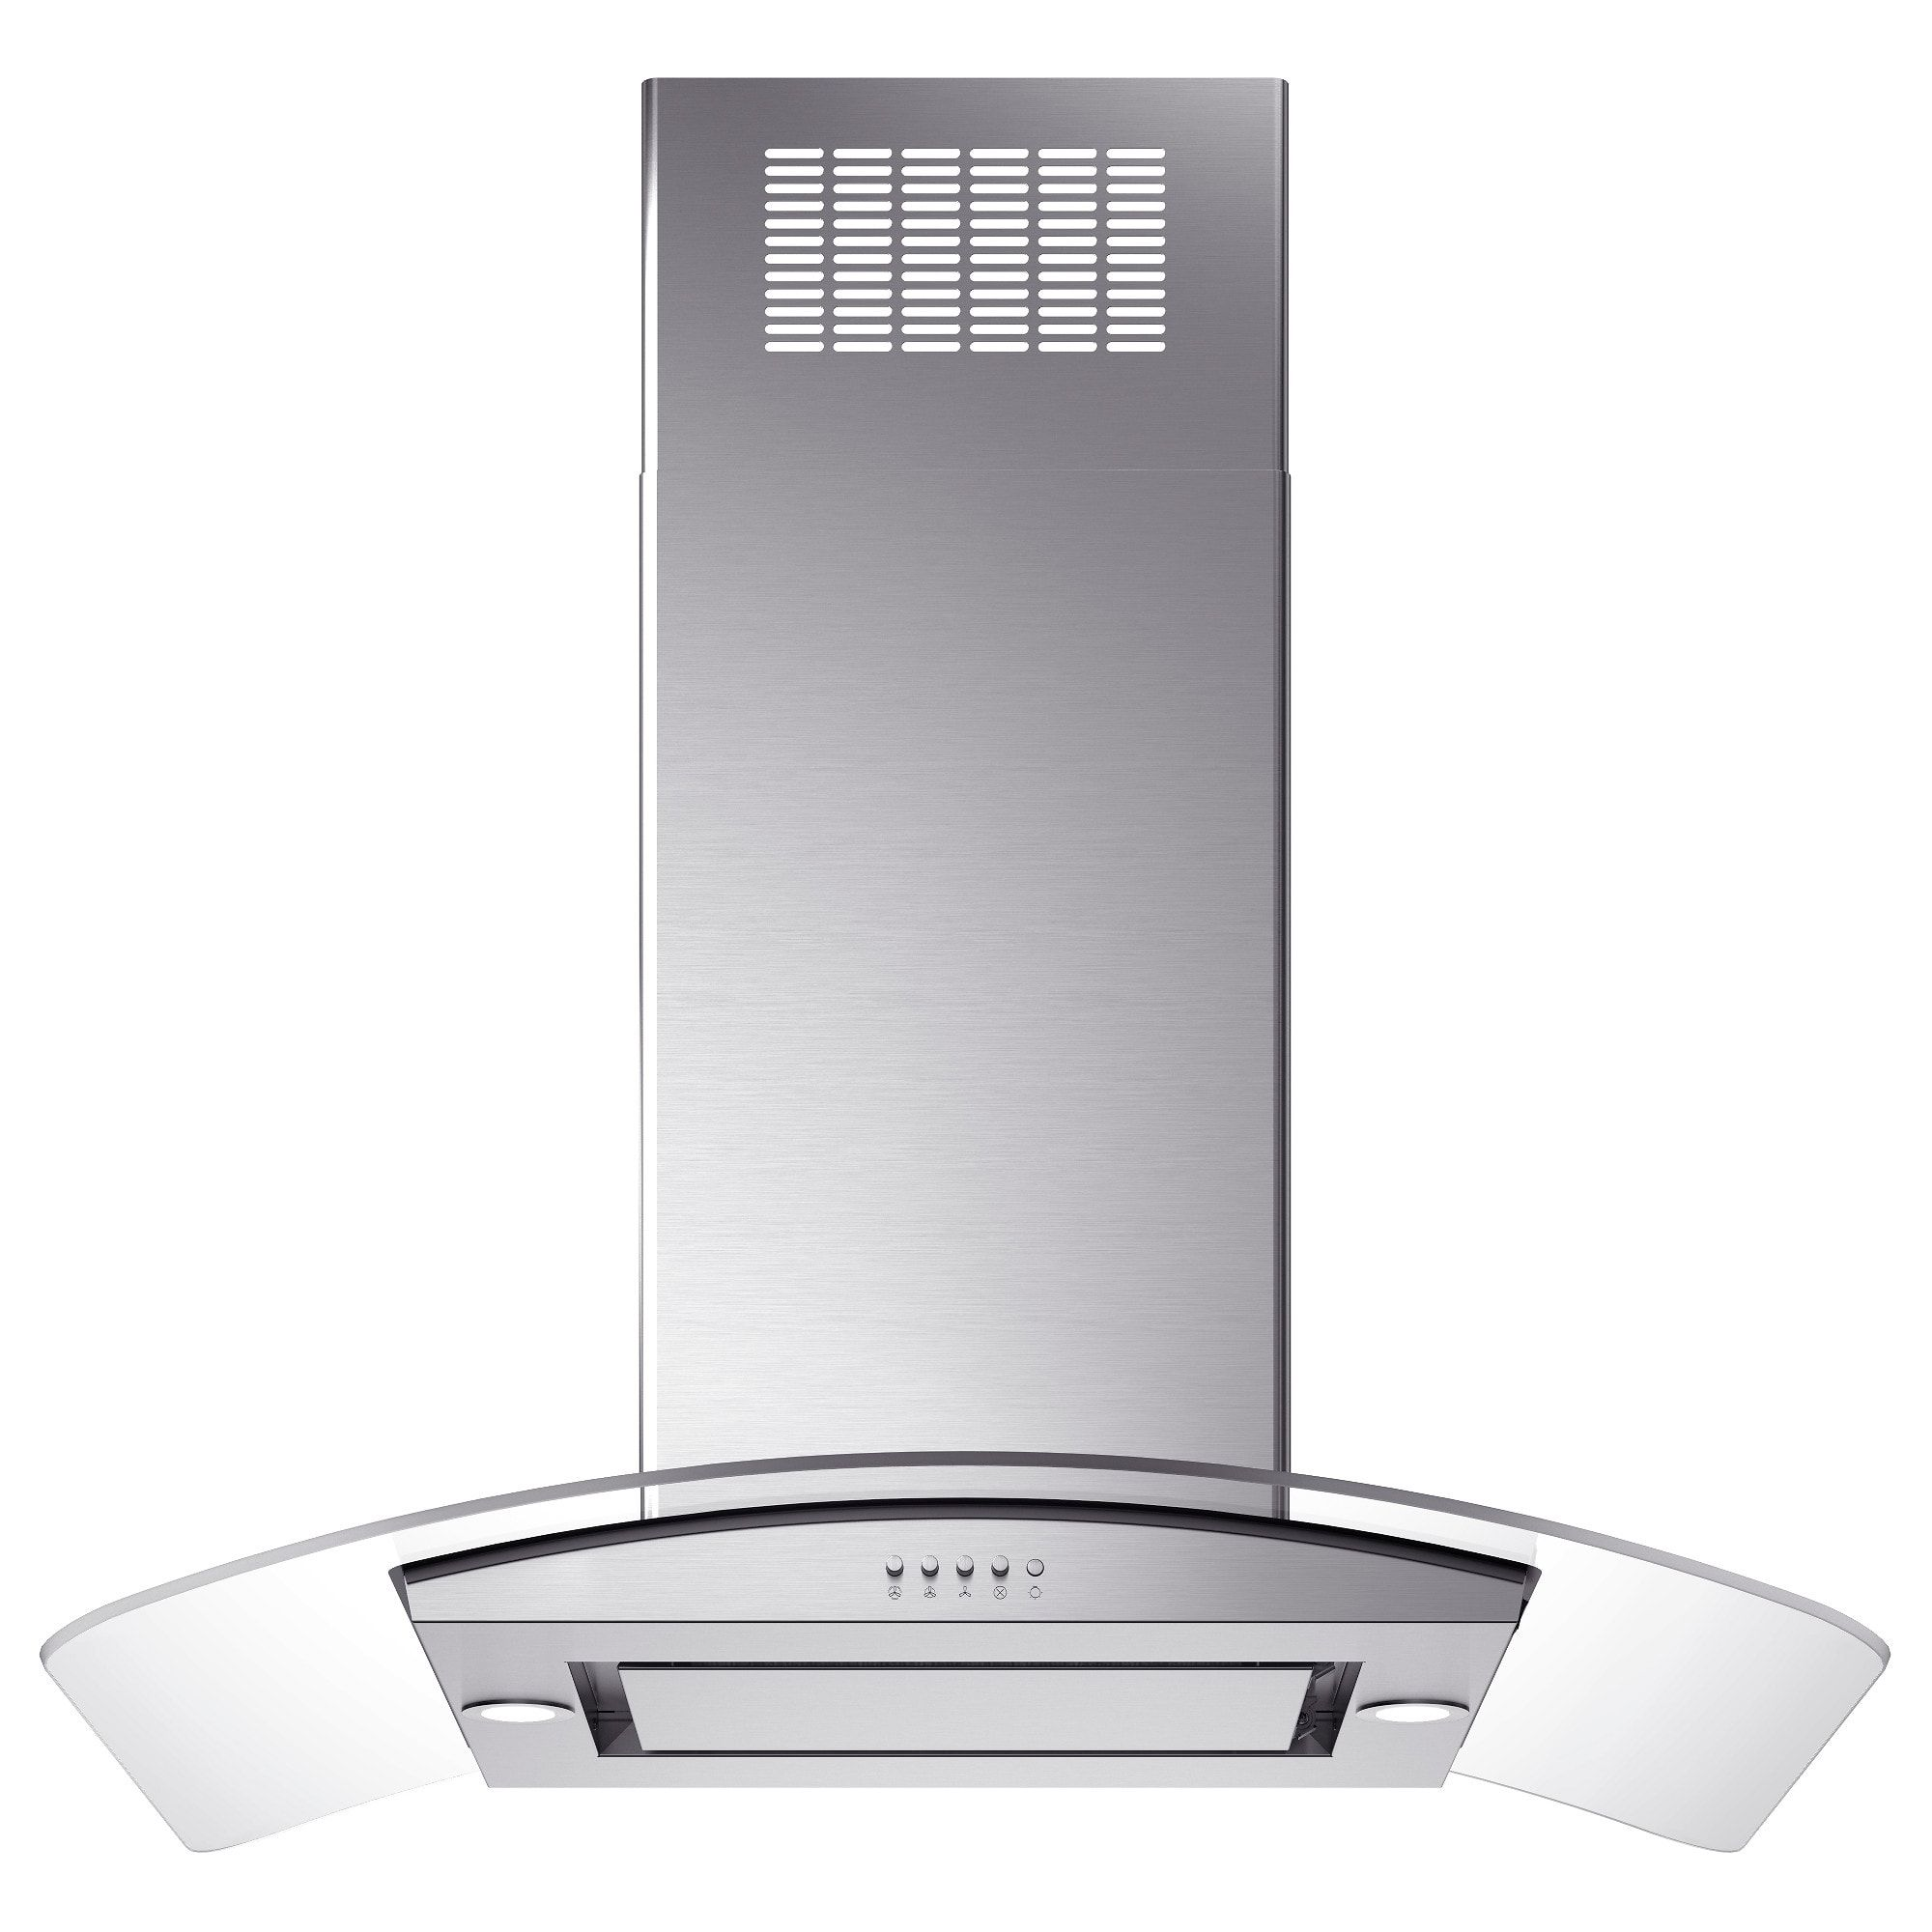 Oberoende Ceiling Mounted Extractor Hood Stainless Steel Glass